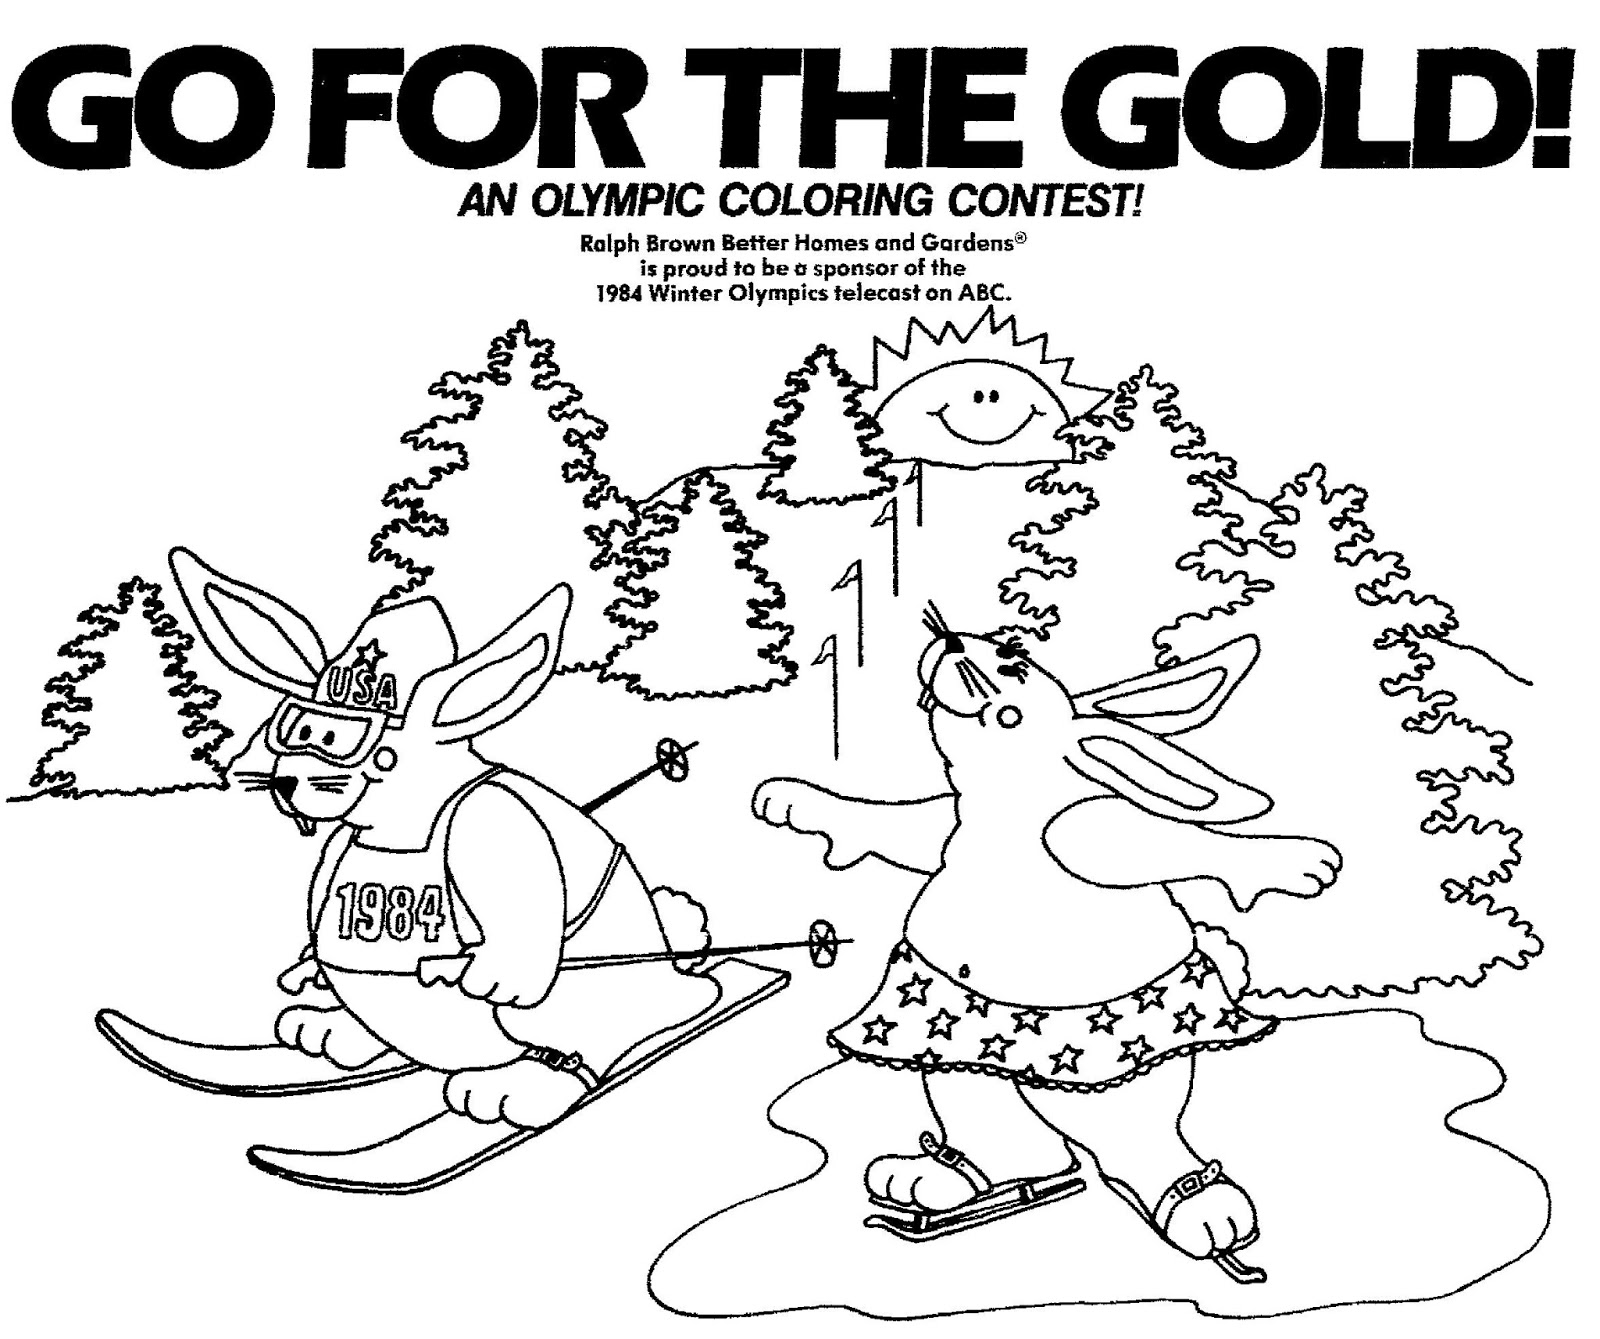 Mostly Paper Dolls Too An Olympic Coloring Contest